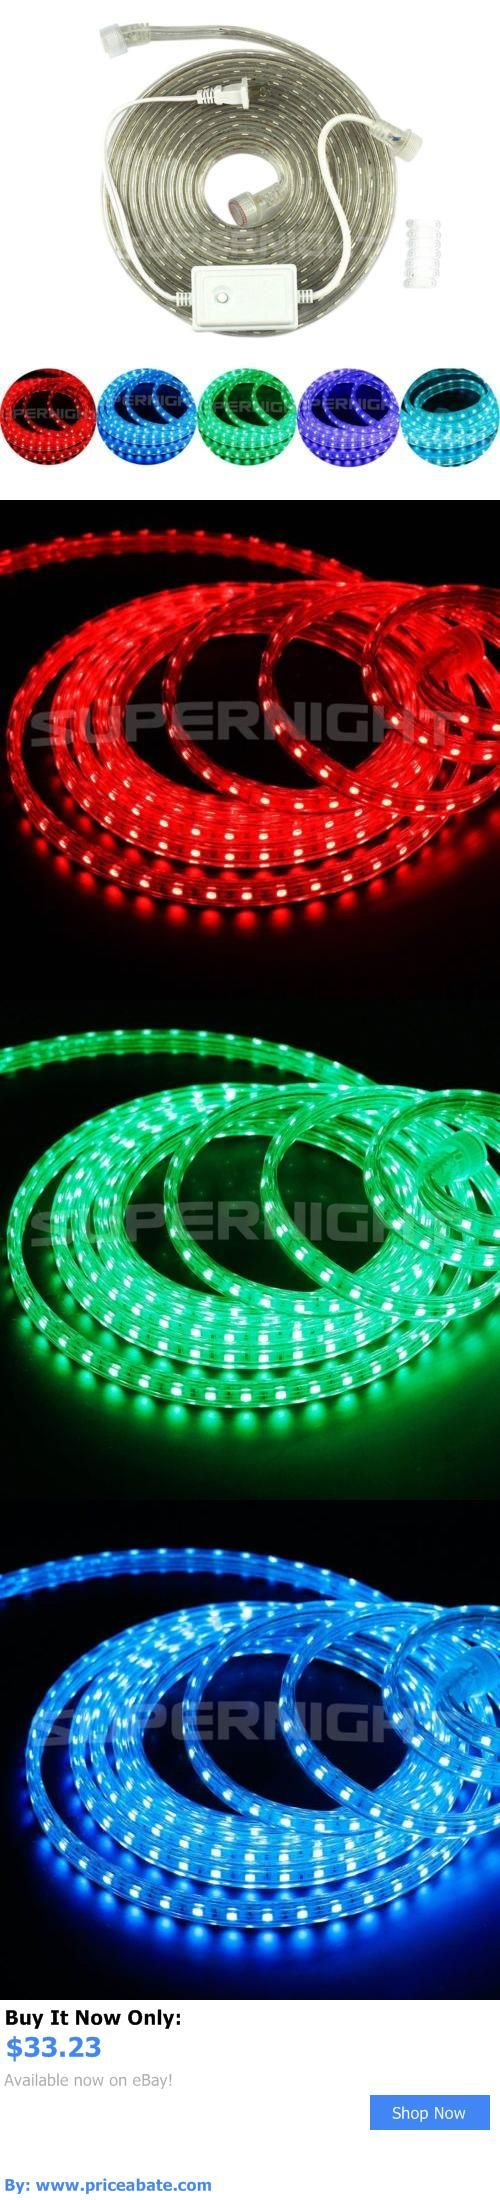 Mejores 137 imgenes de rgb leds and controls en pinterest lamps and lighting waterproof 5m 5050 smd ac110v rgb led strip light flat rope light aloadofball Image collections